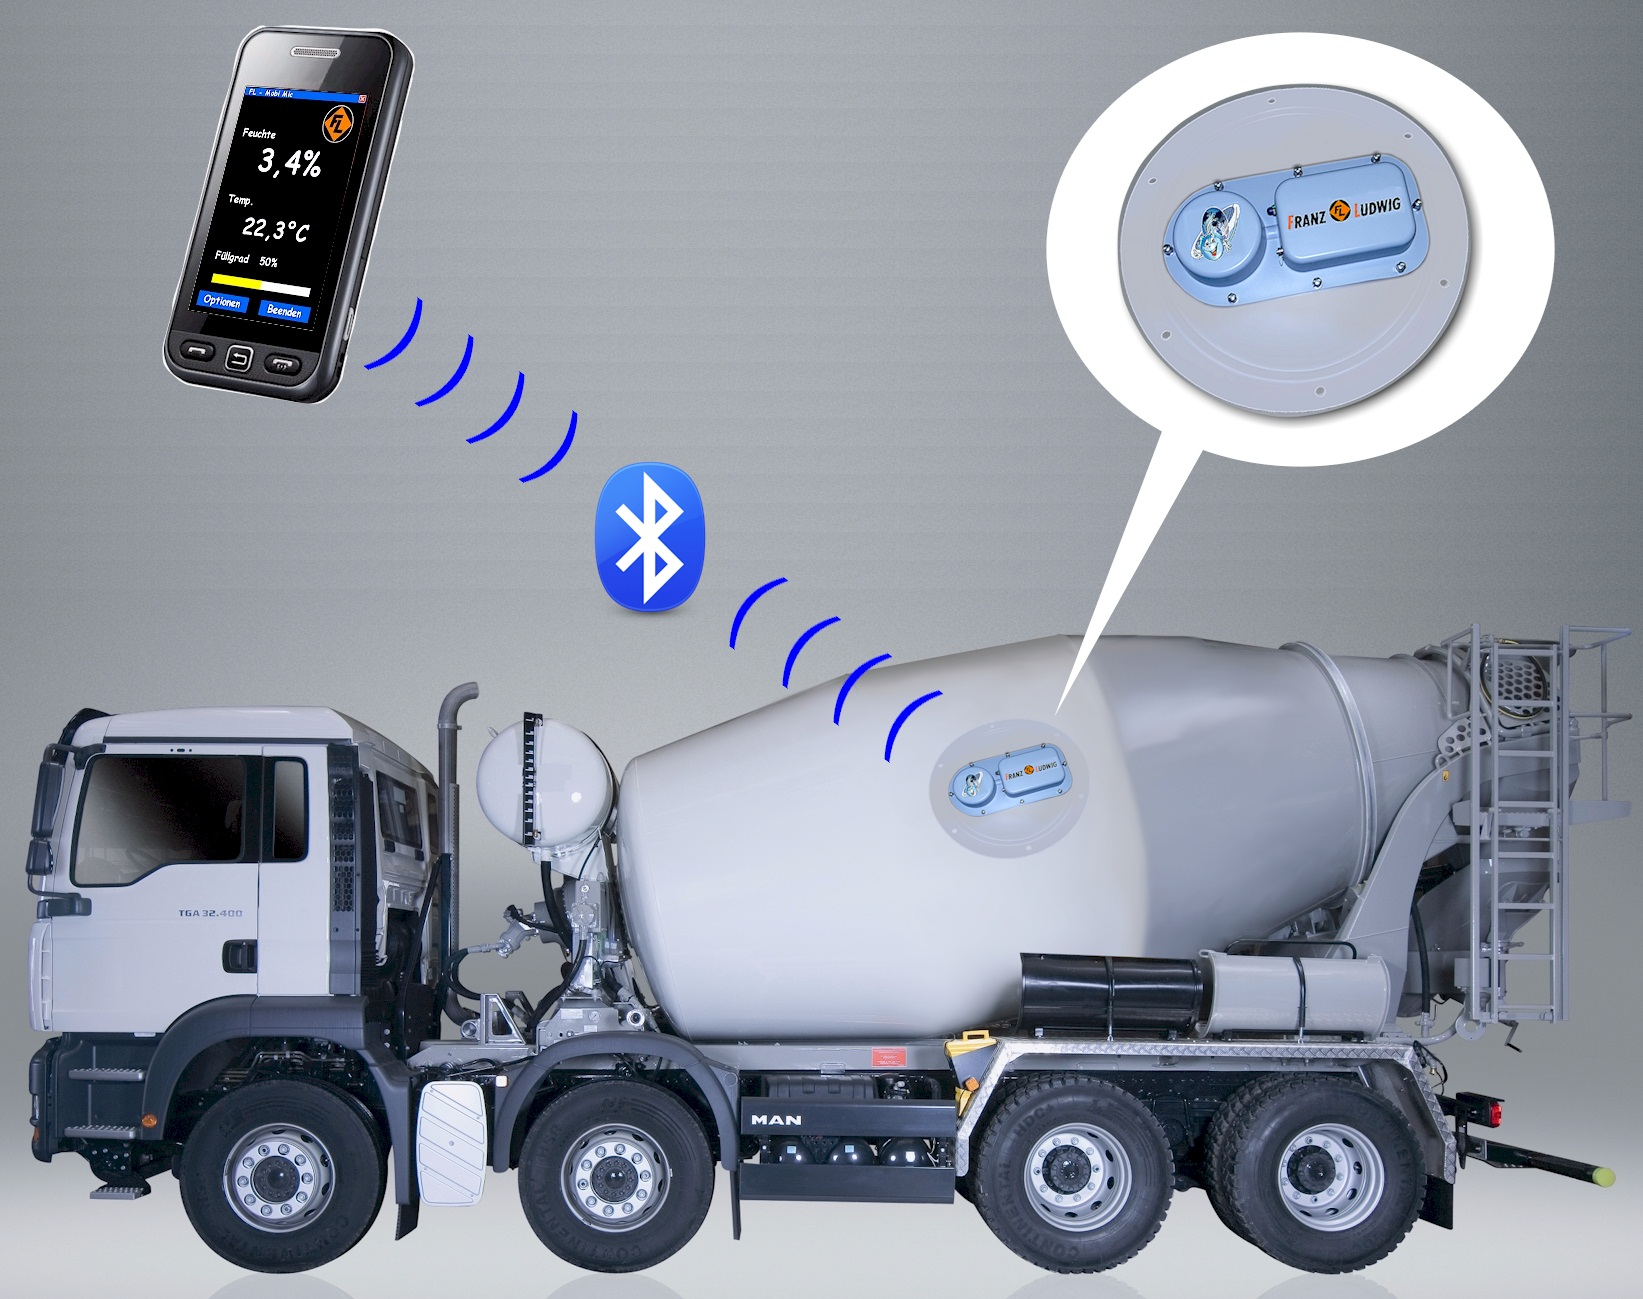 New Wireless Moisture Measurement System Improves Concrete